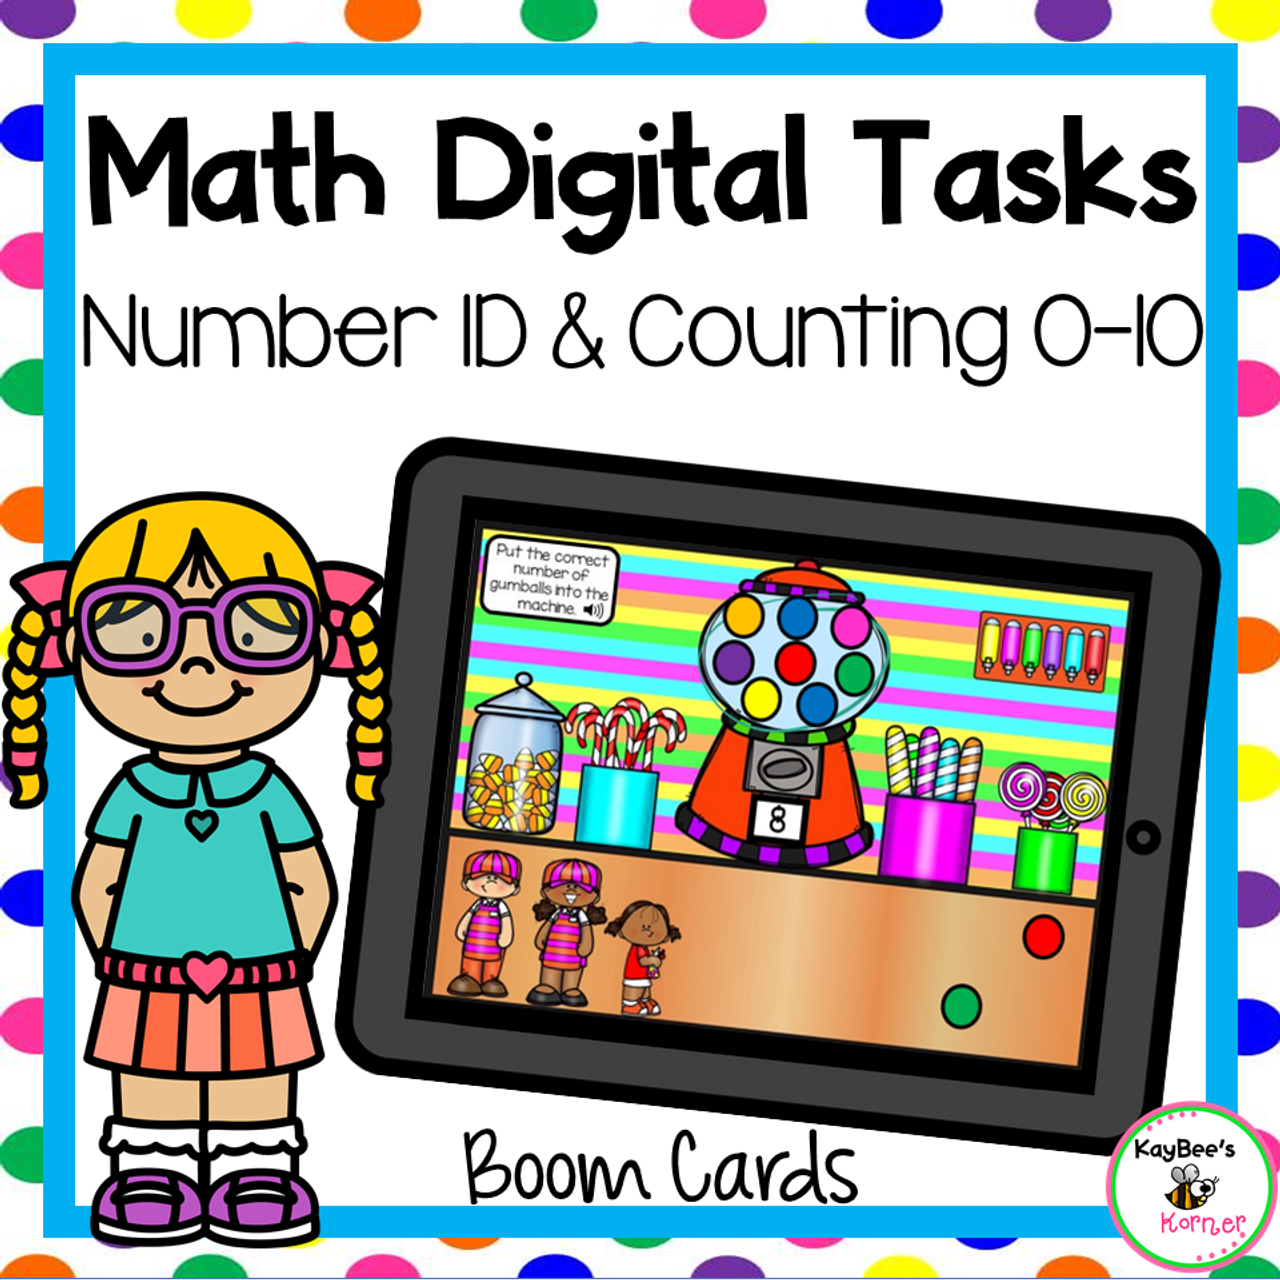 Number Recognition and Counting Objects Boom Cards